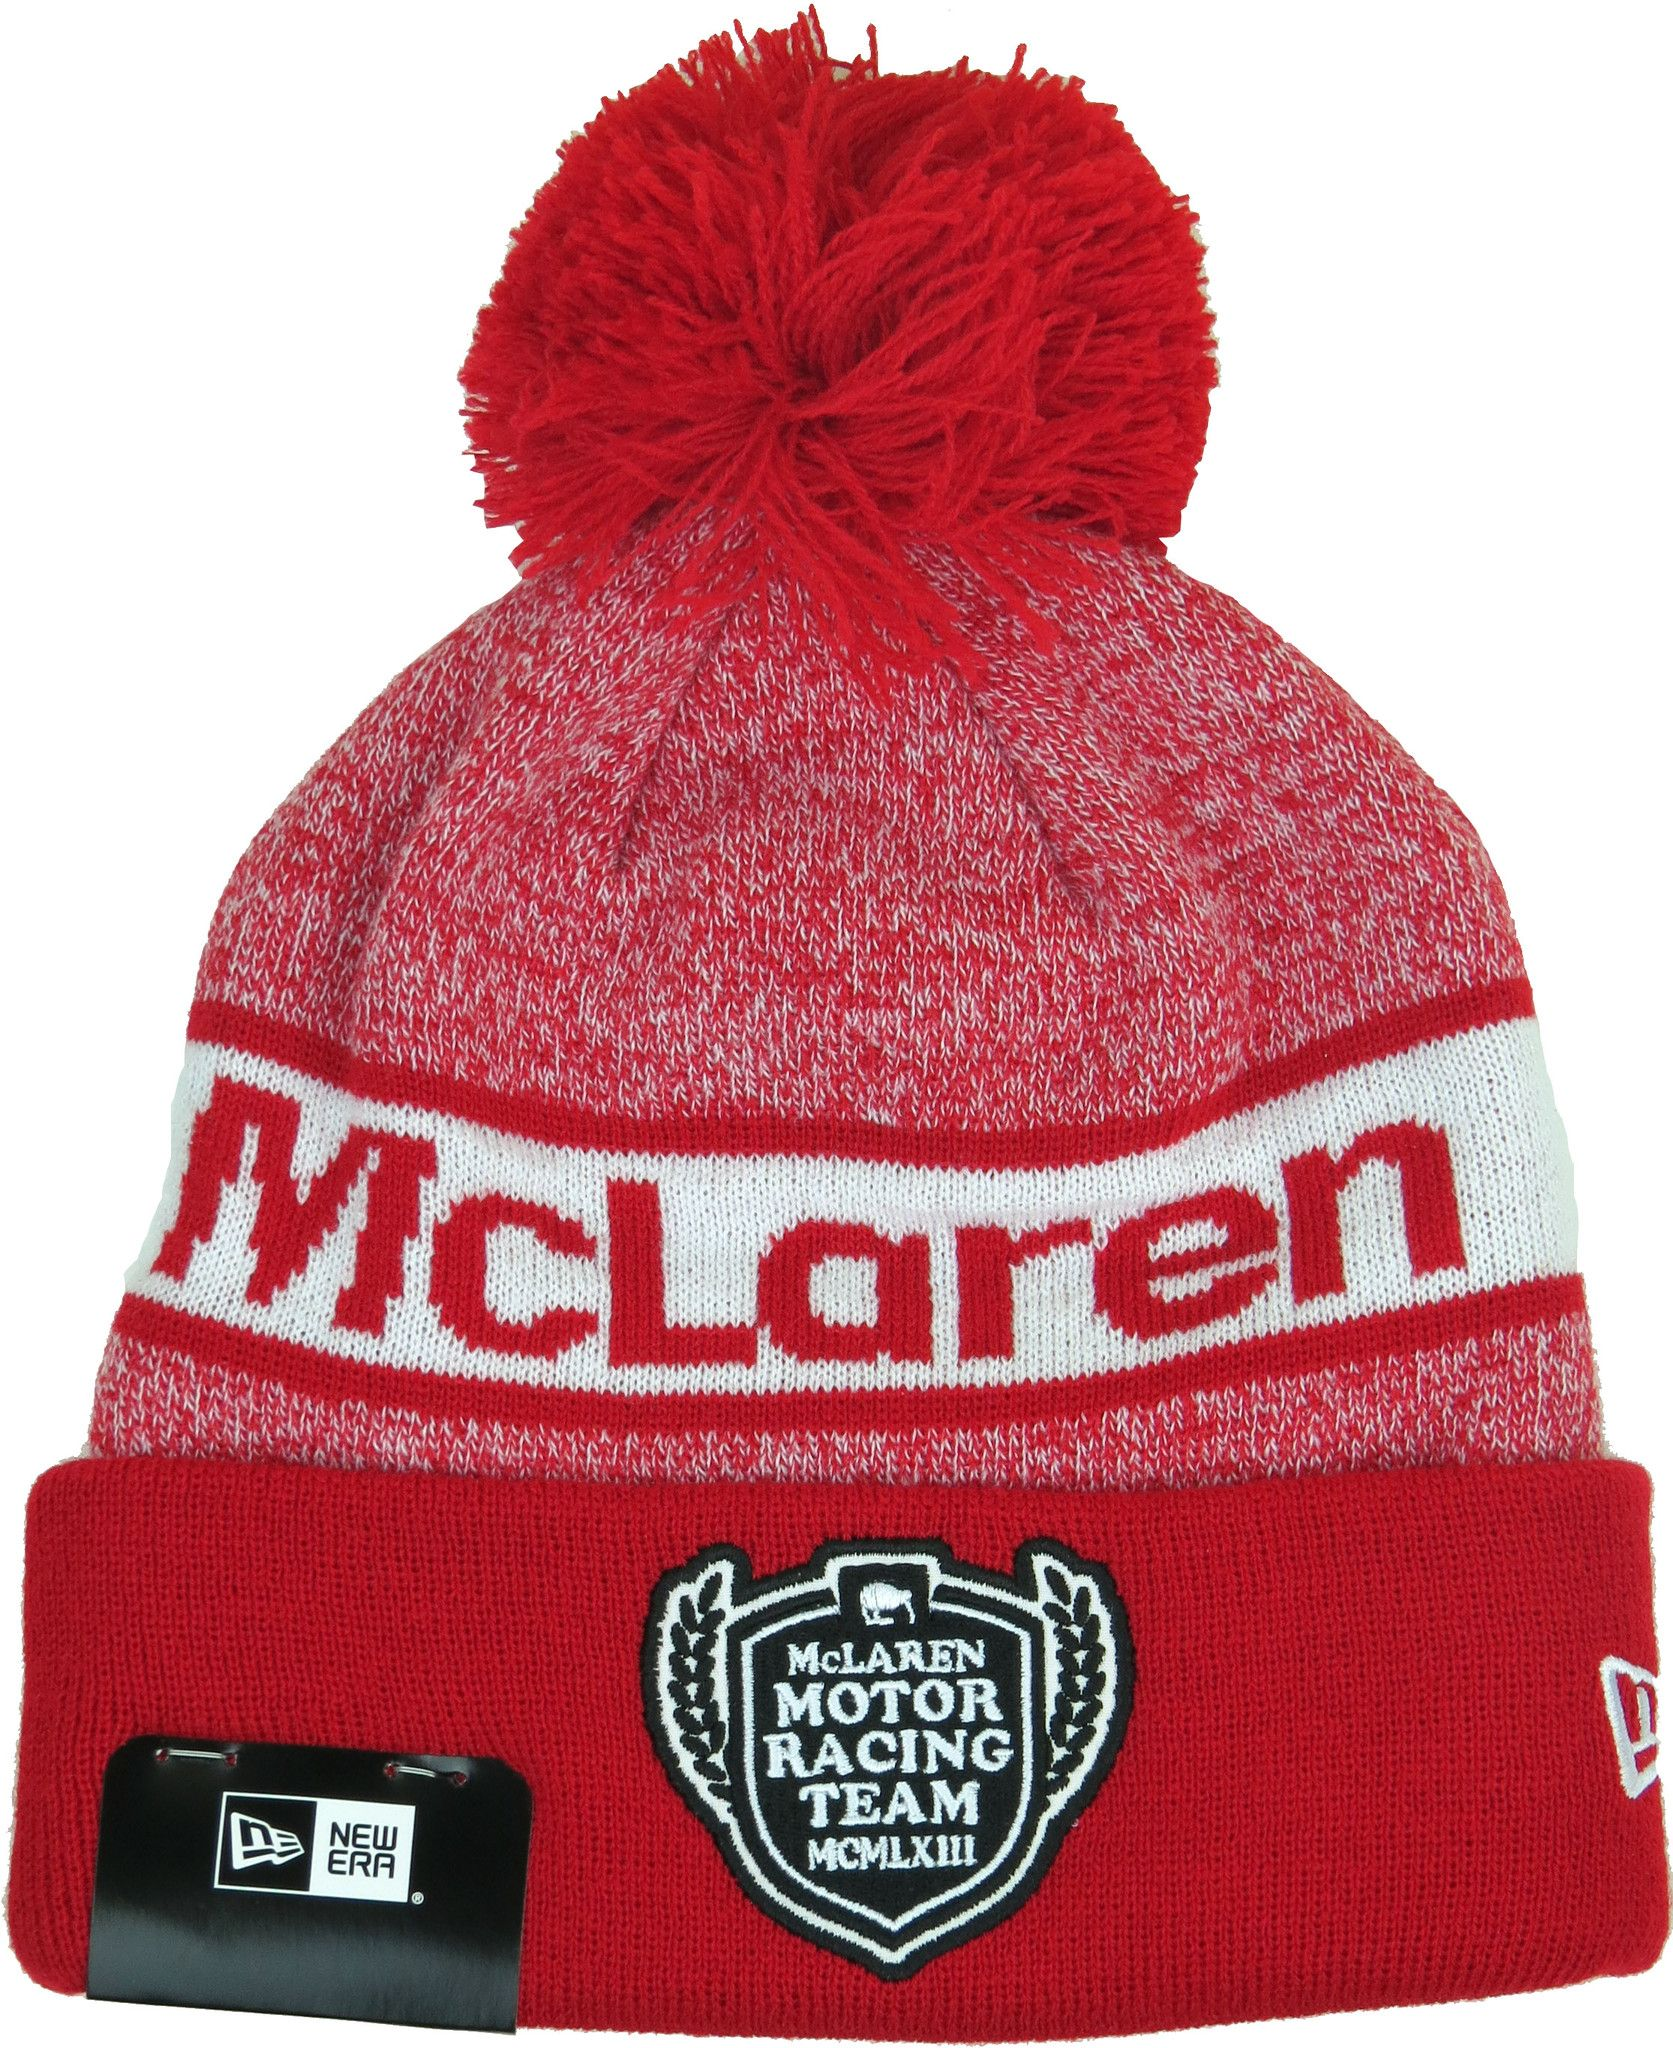 New Era McLaren Racing Retro Beanie Bobble Hat. Red bb9e3d511f7